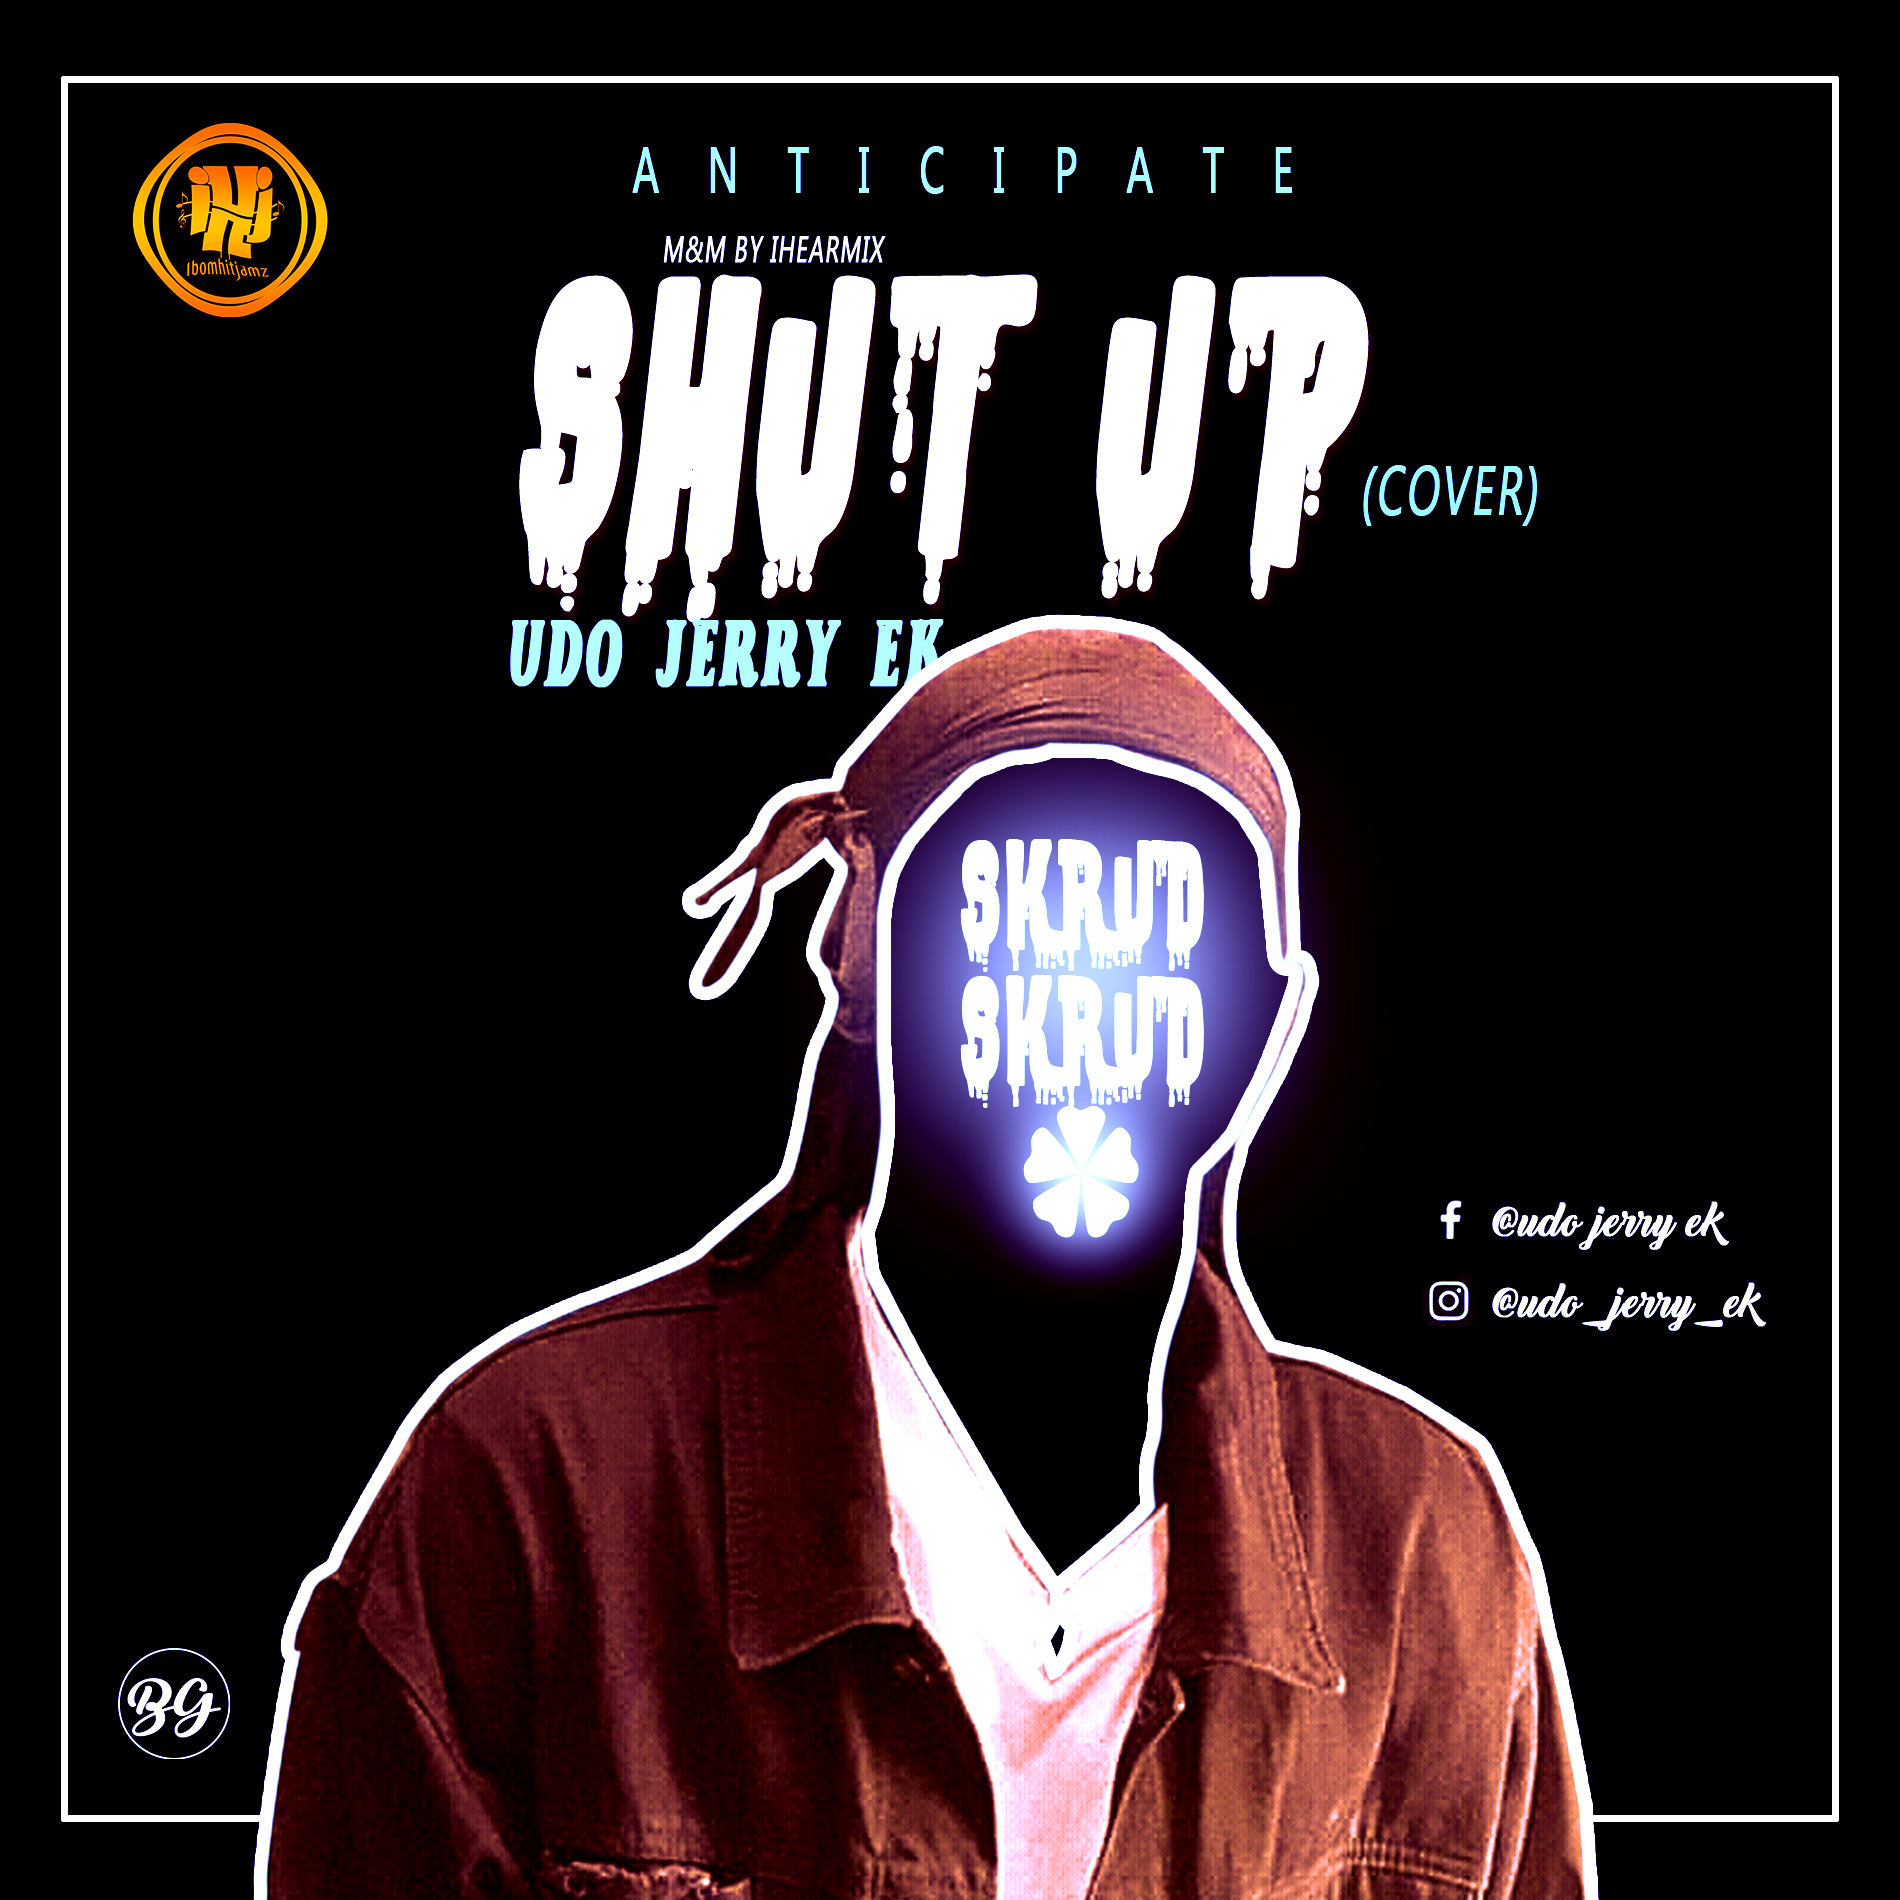 DOWNLOAD MUSIC: Udo Jerry – Shut Up (cover)